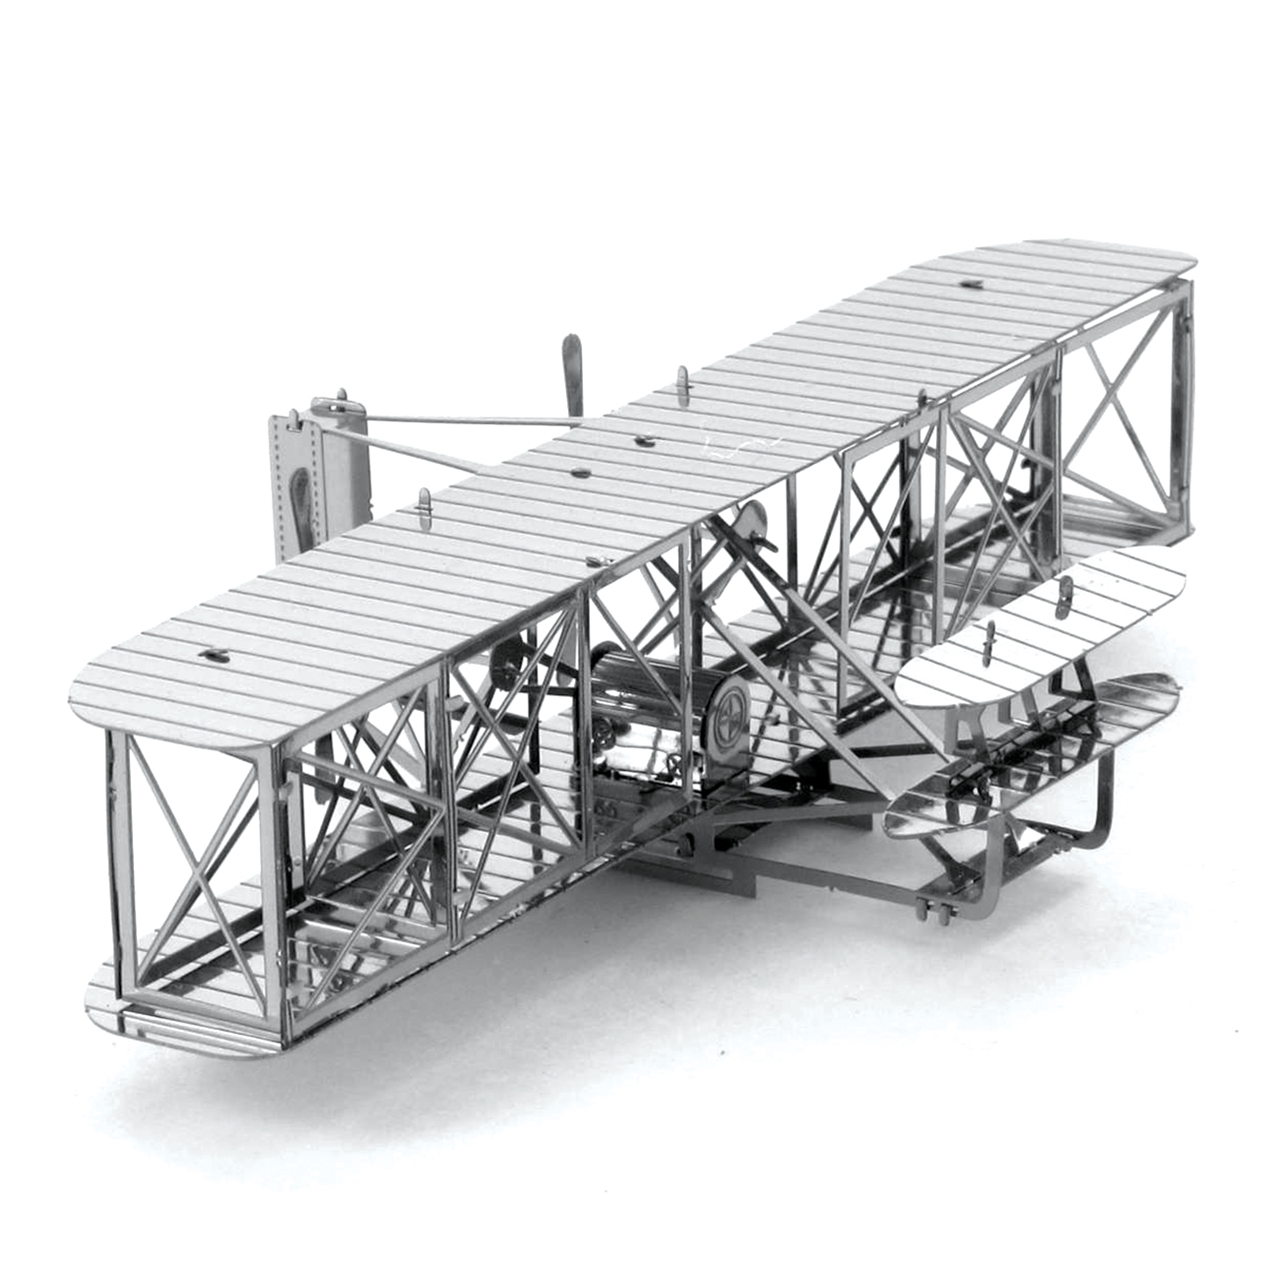 Wright Brothers Flight with fascinations - metal earth 3d metal model diy kits - unique gifts